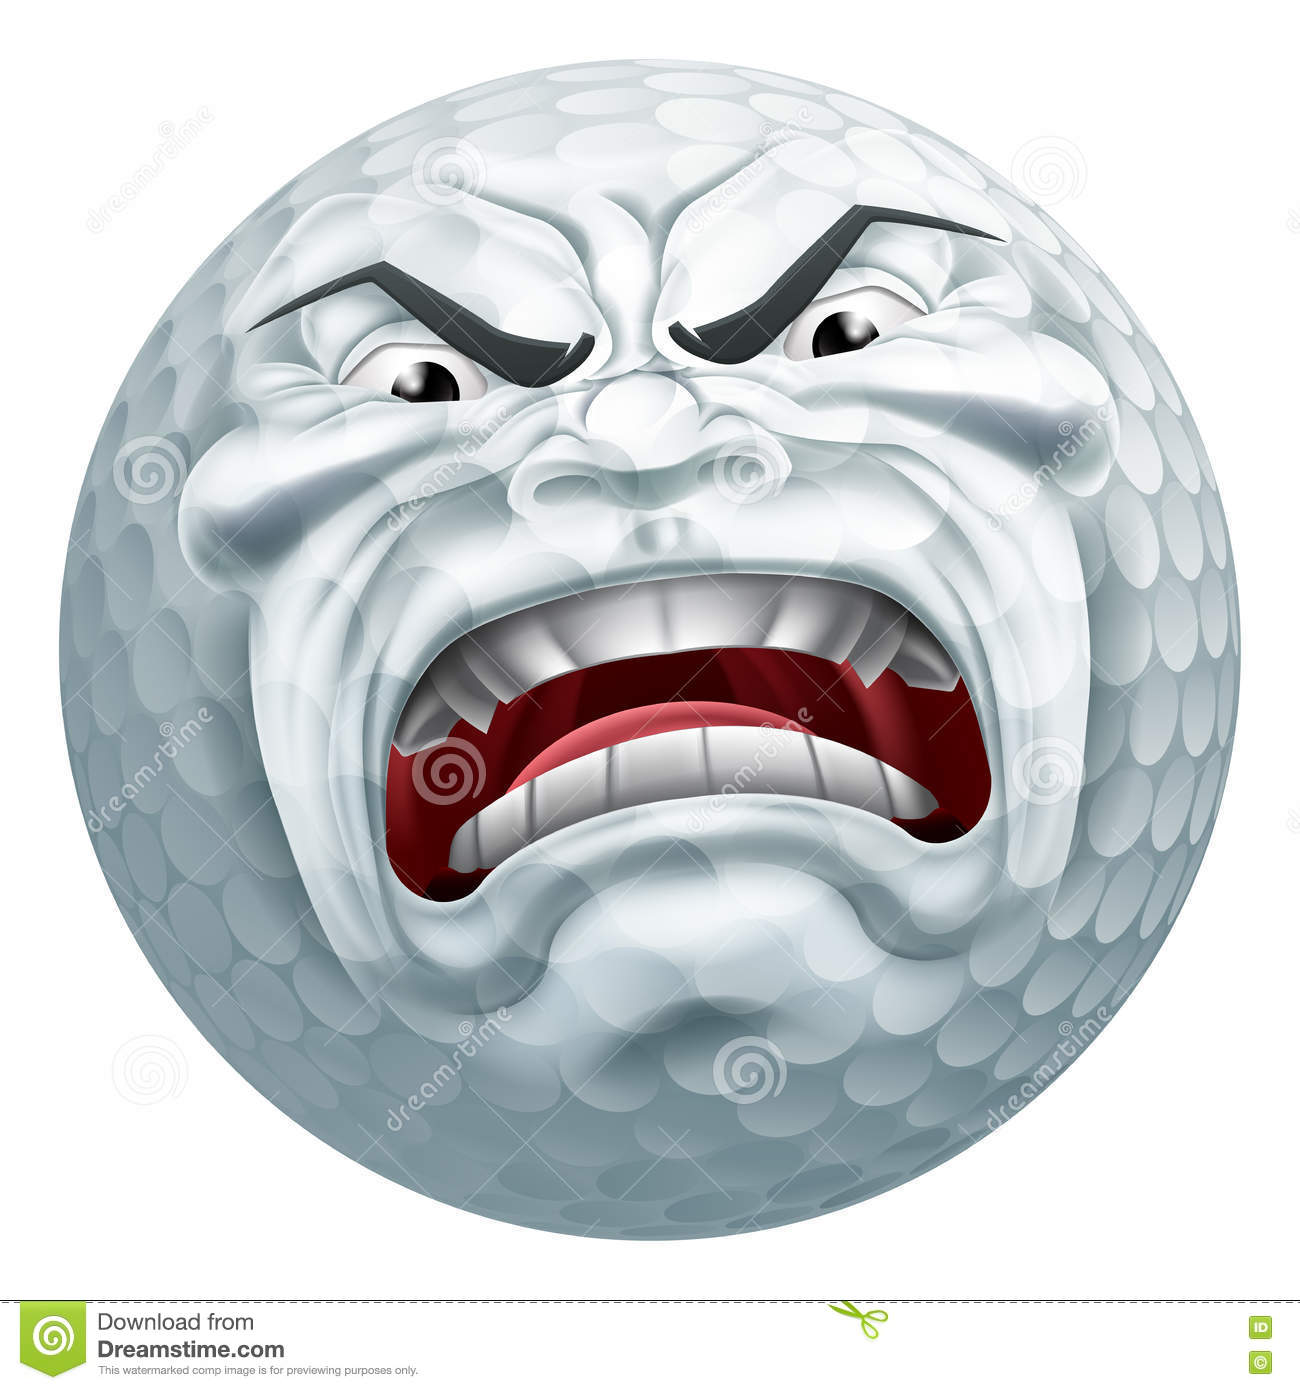 Angry Golf Ball Sports Cartoon Mascot Stock Vector - Image: 72528263